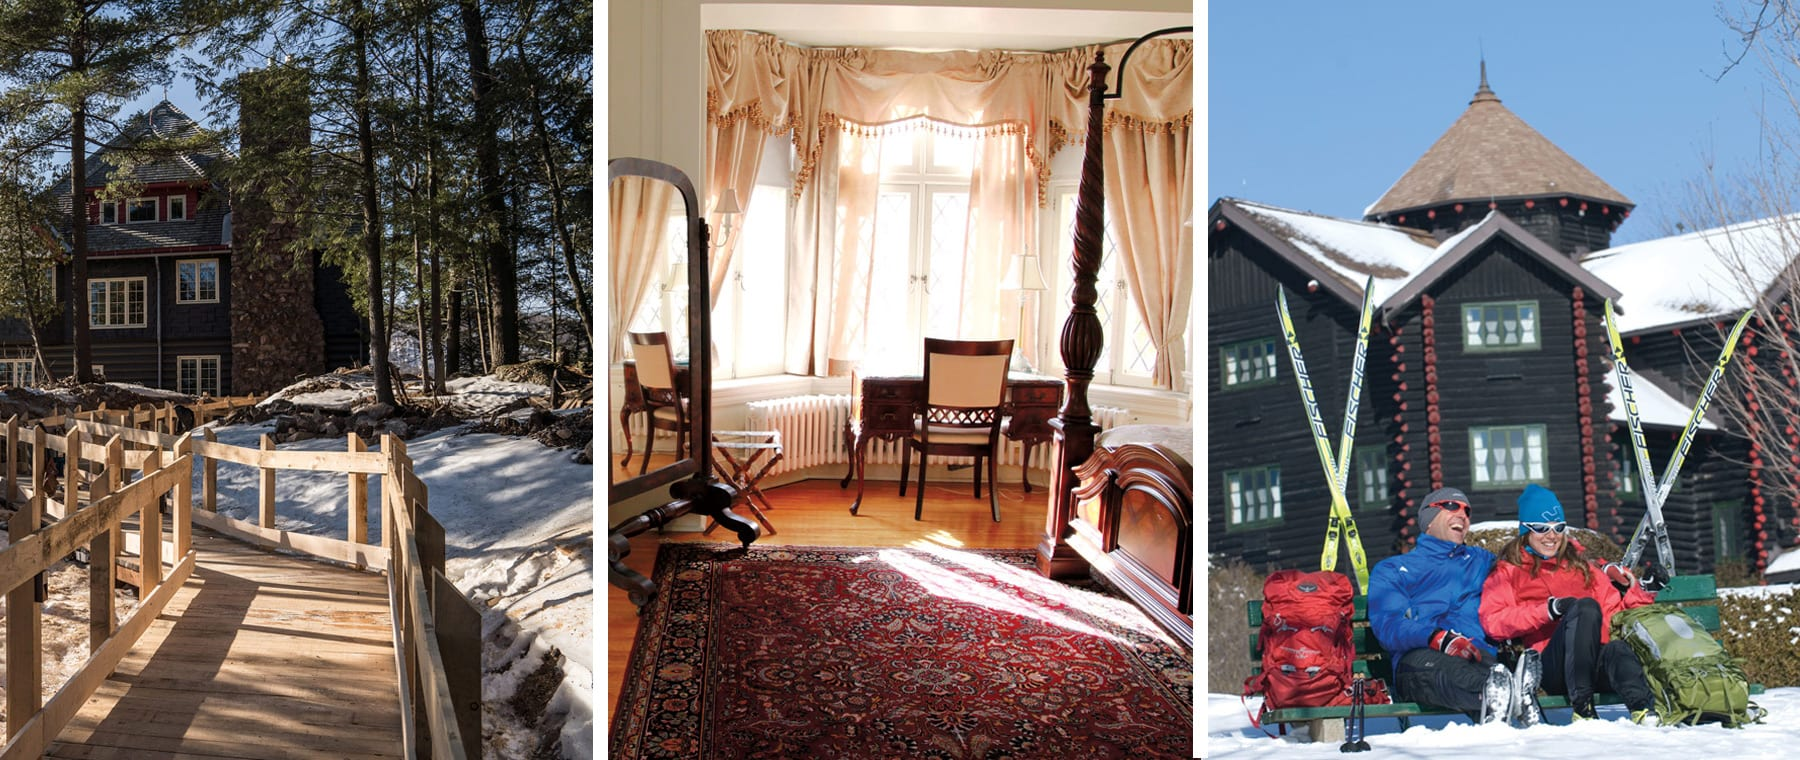 Romantic Escape, Family Adventure, Or Getaway With Friends? 3 Winter Vacation Spots — All Within An Hour's Drive photo